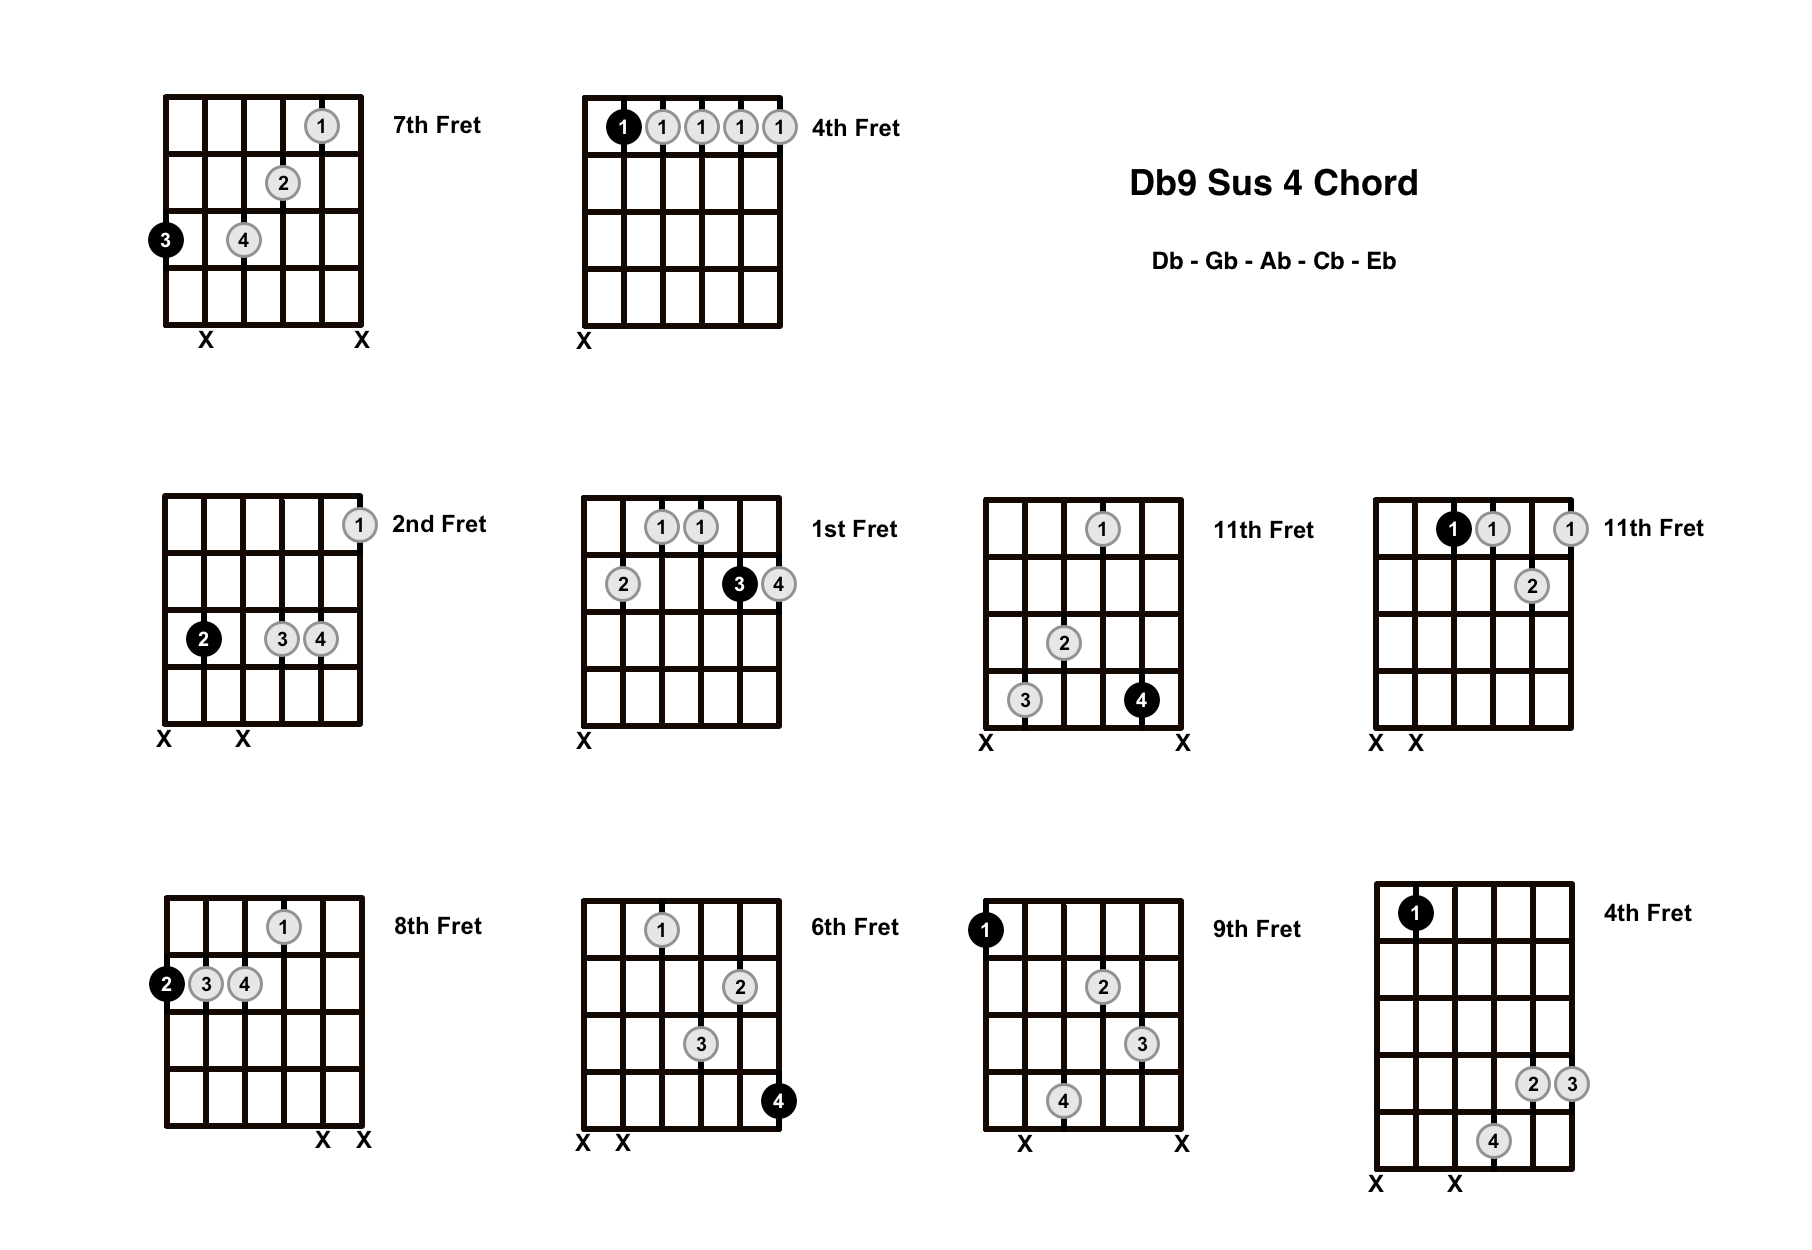 Db9 Sus 4 Chord On The Guitar (D Flat 9 Suspended 4, Cb/Db) – Diagrams, Finger Positions and Theory